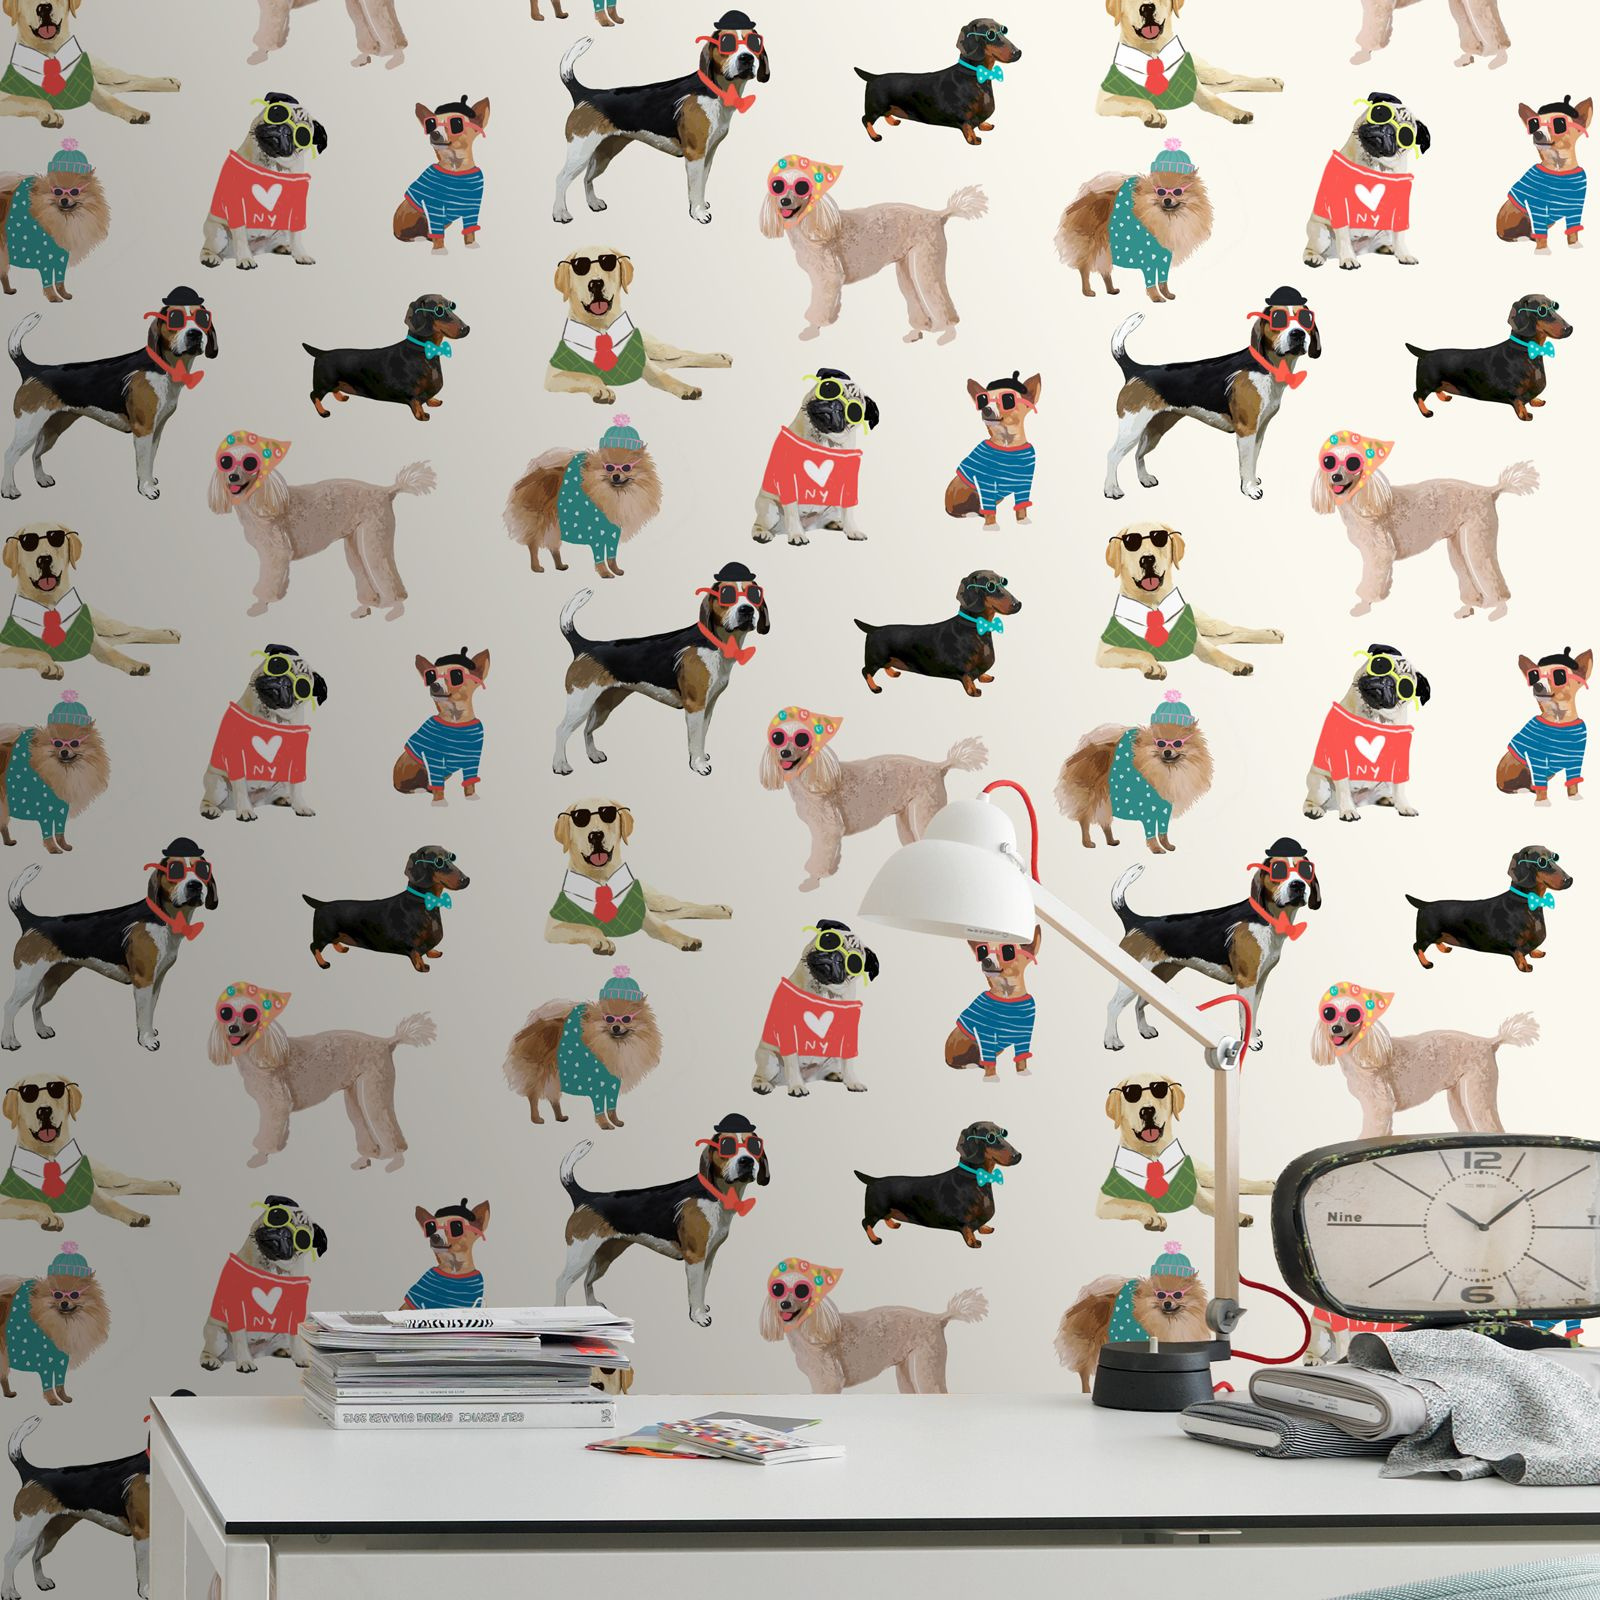 . Details about DOG THEMED WALLPAPER ANIMAL PUG PUPPY FRAMES SELFIES    VARIOUS DESIGNS AVAILABLE